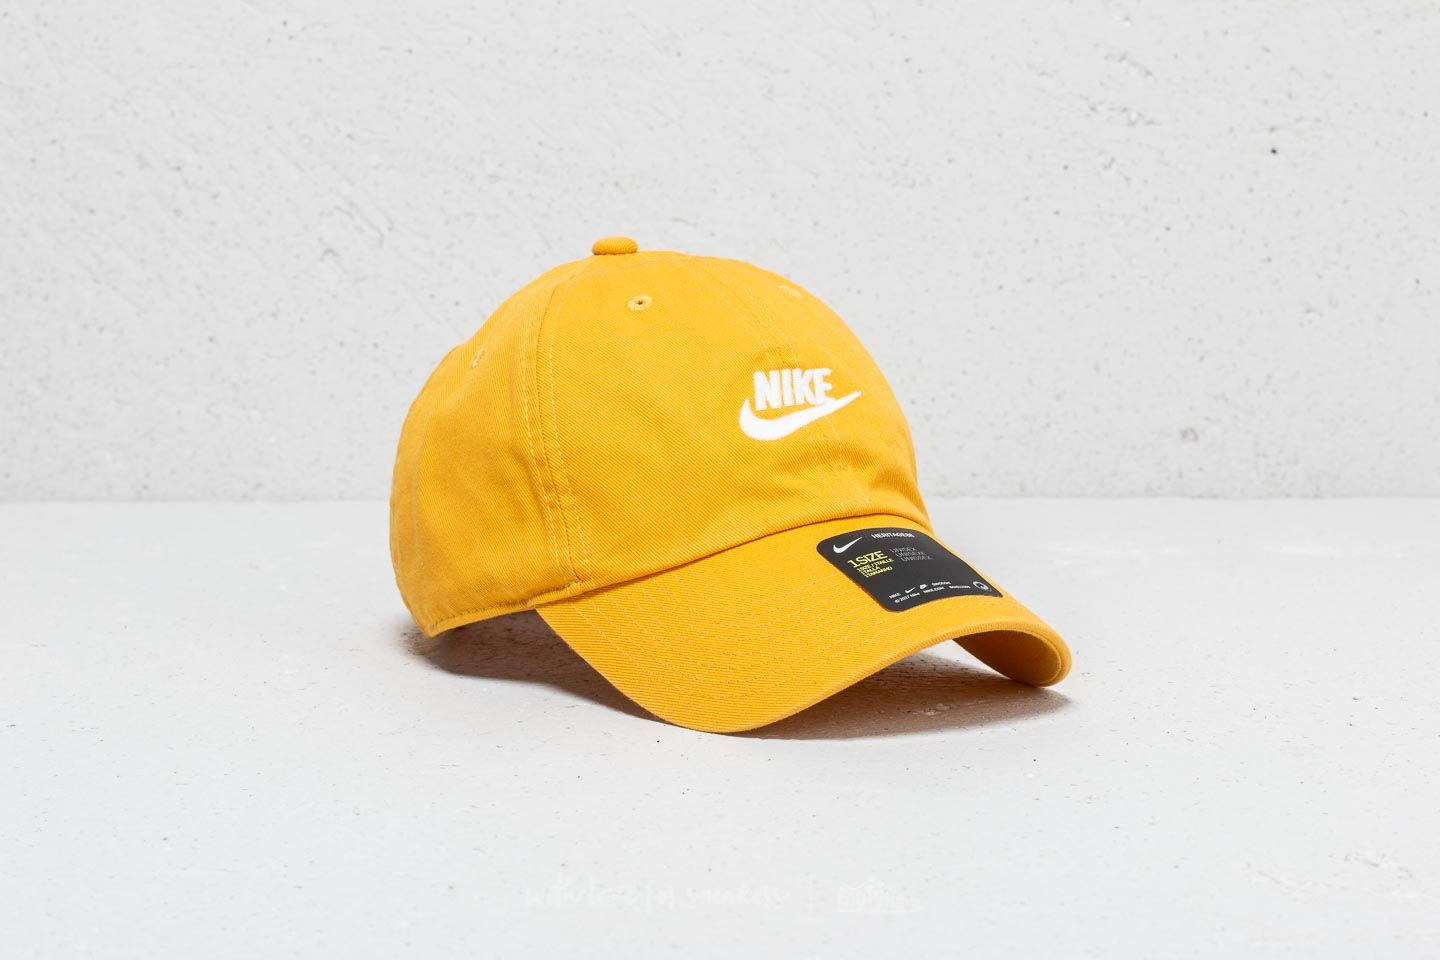 4d1d17941a1 Nike Heritage 86 Futura Washed Cap Yellow